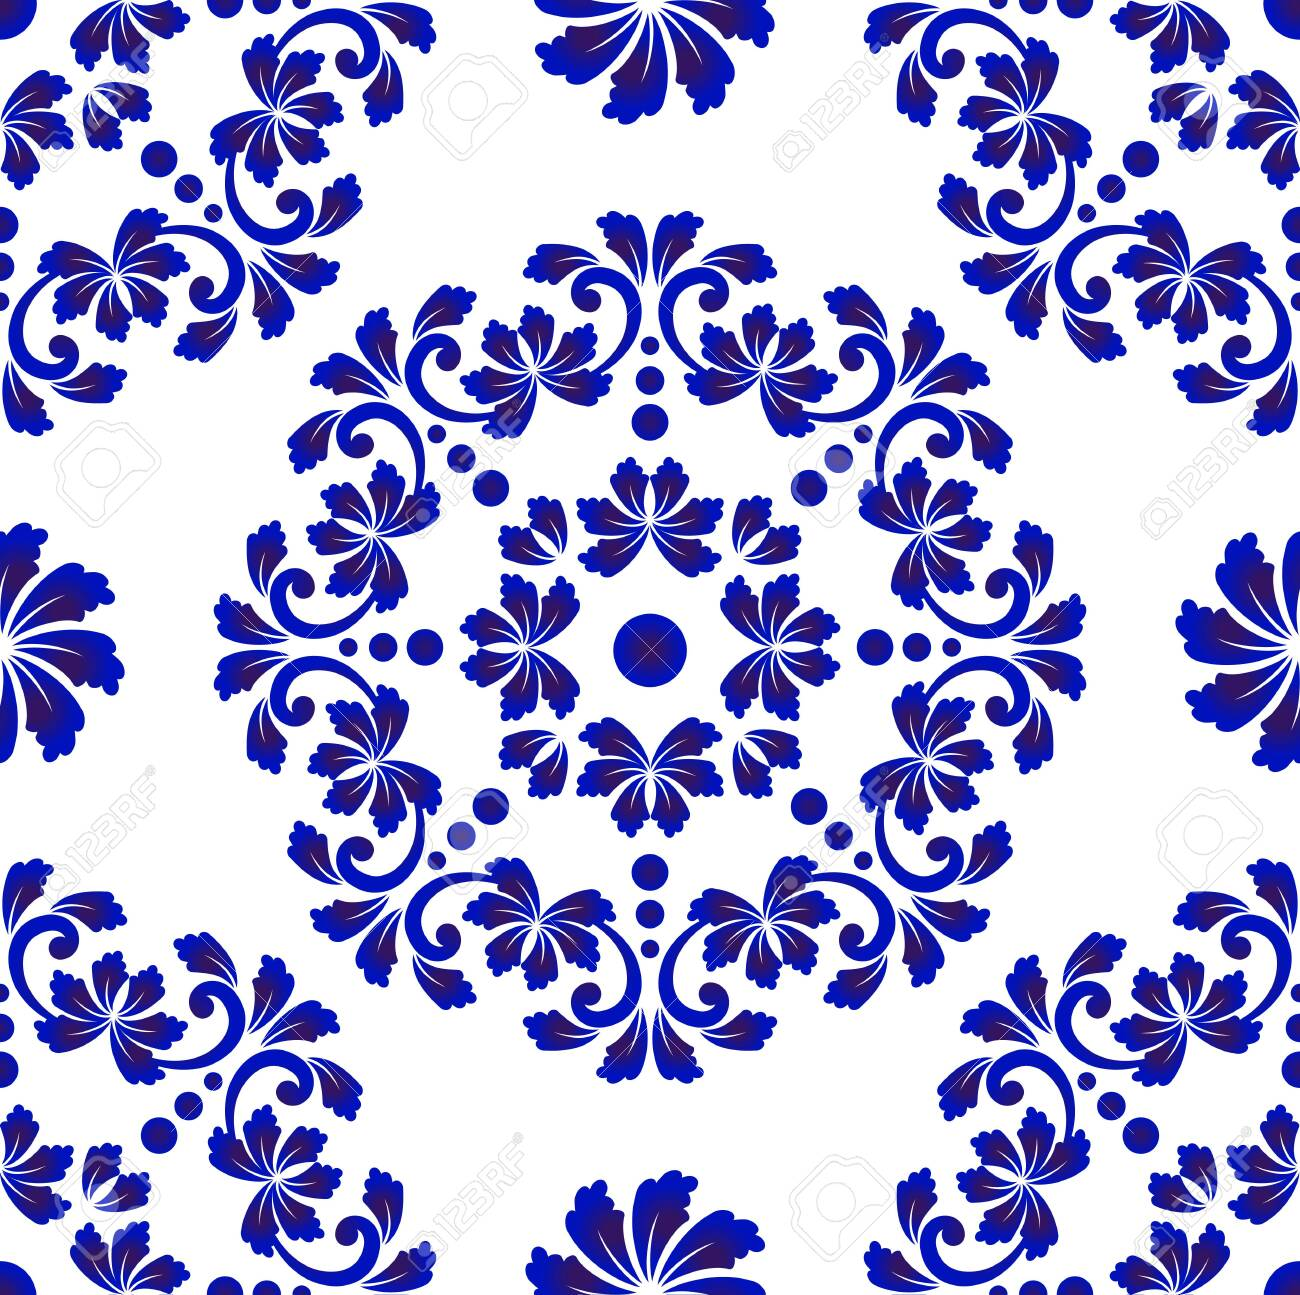 blue and white tile pattern abstract floral decorative seamless